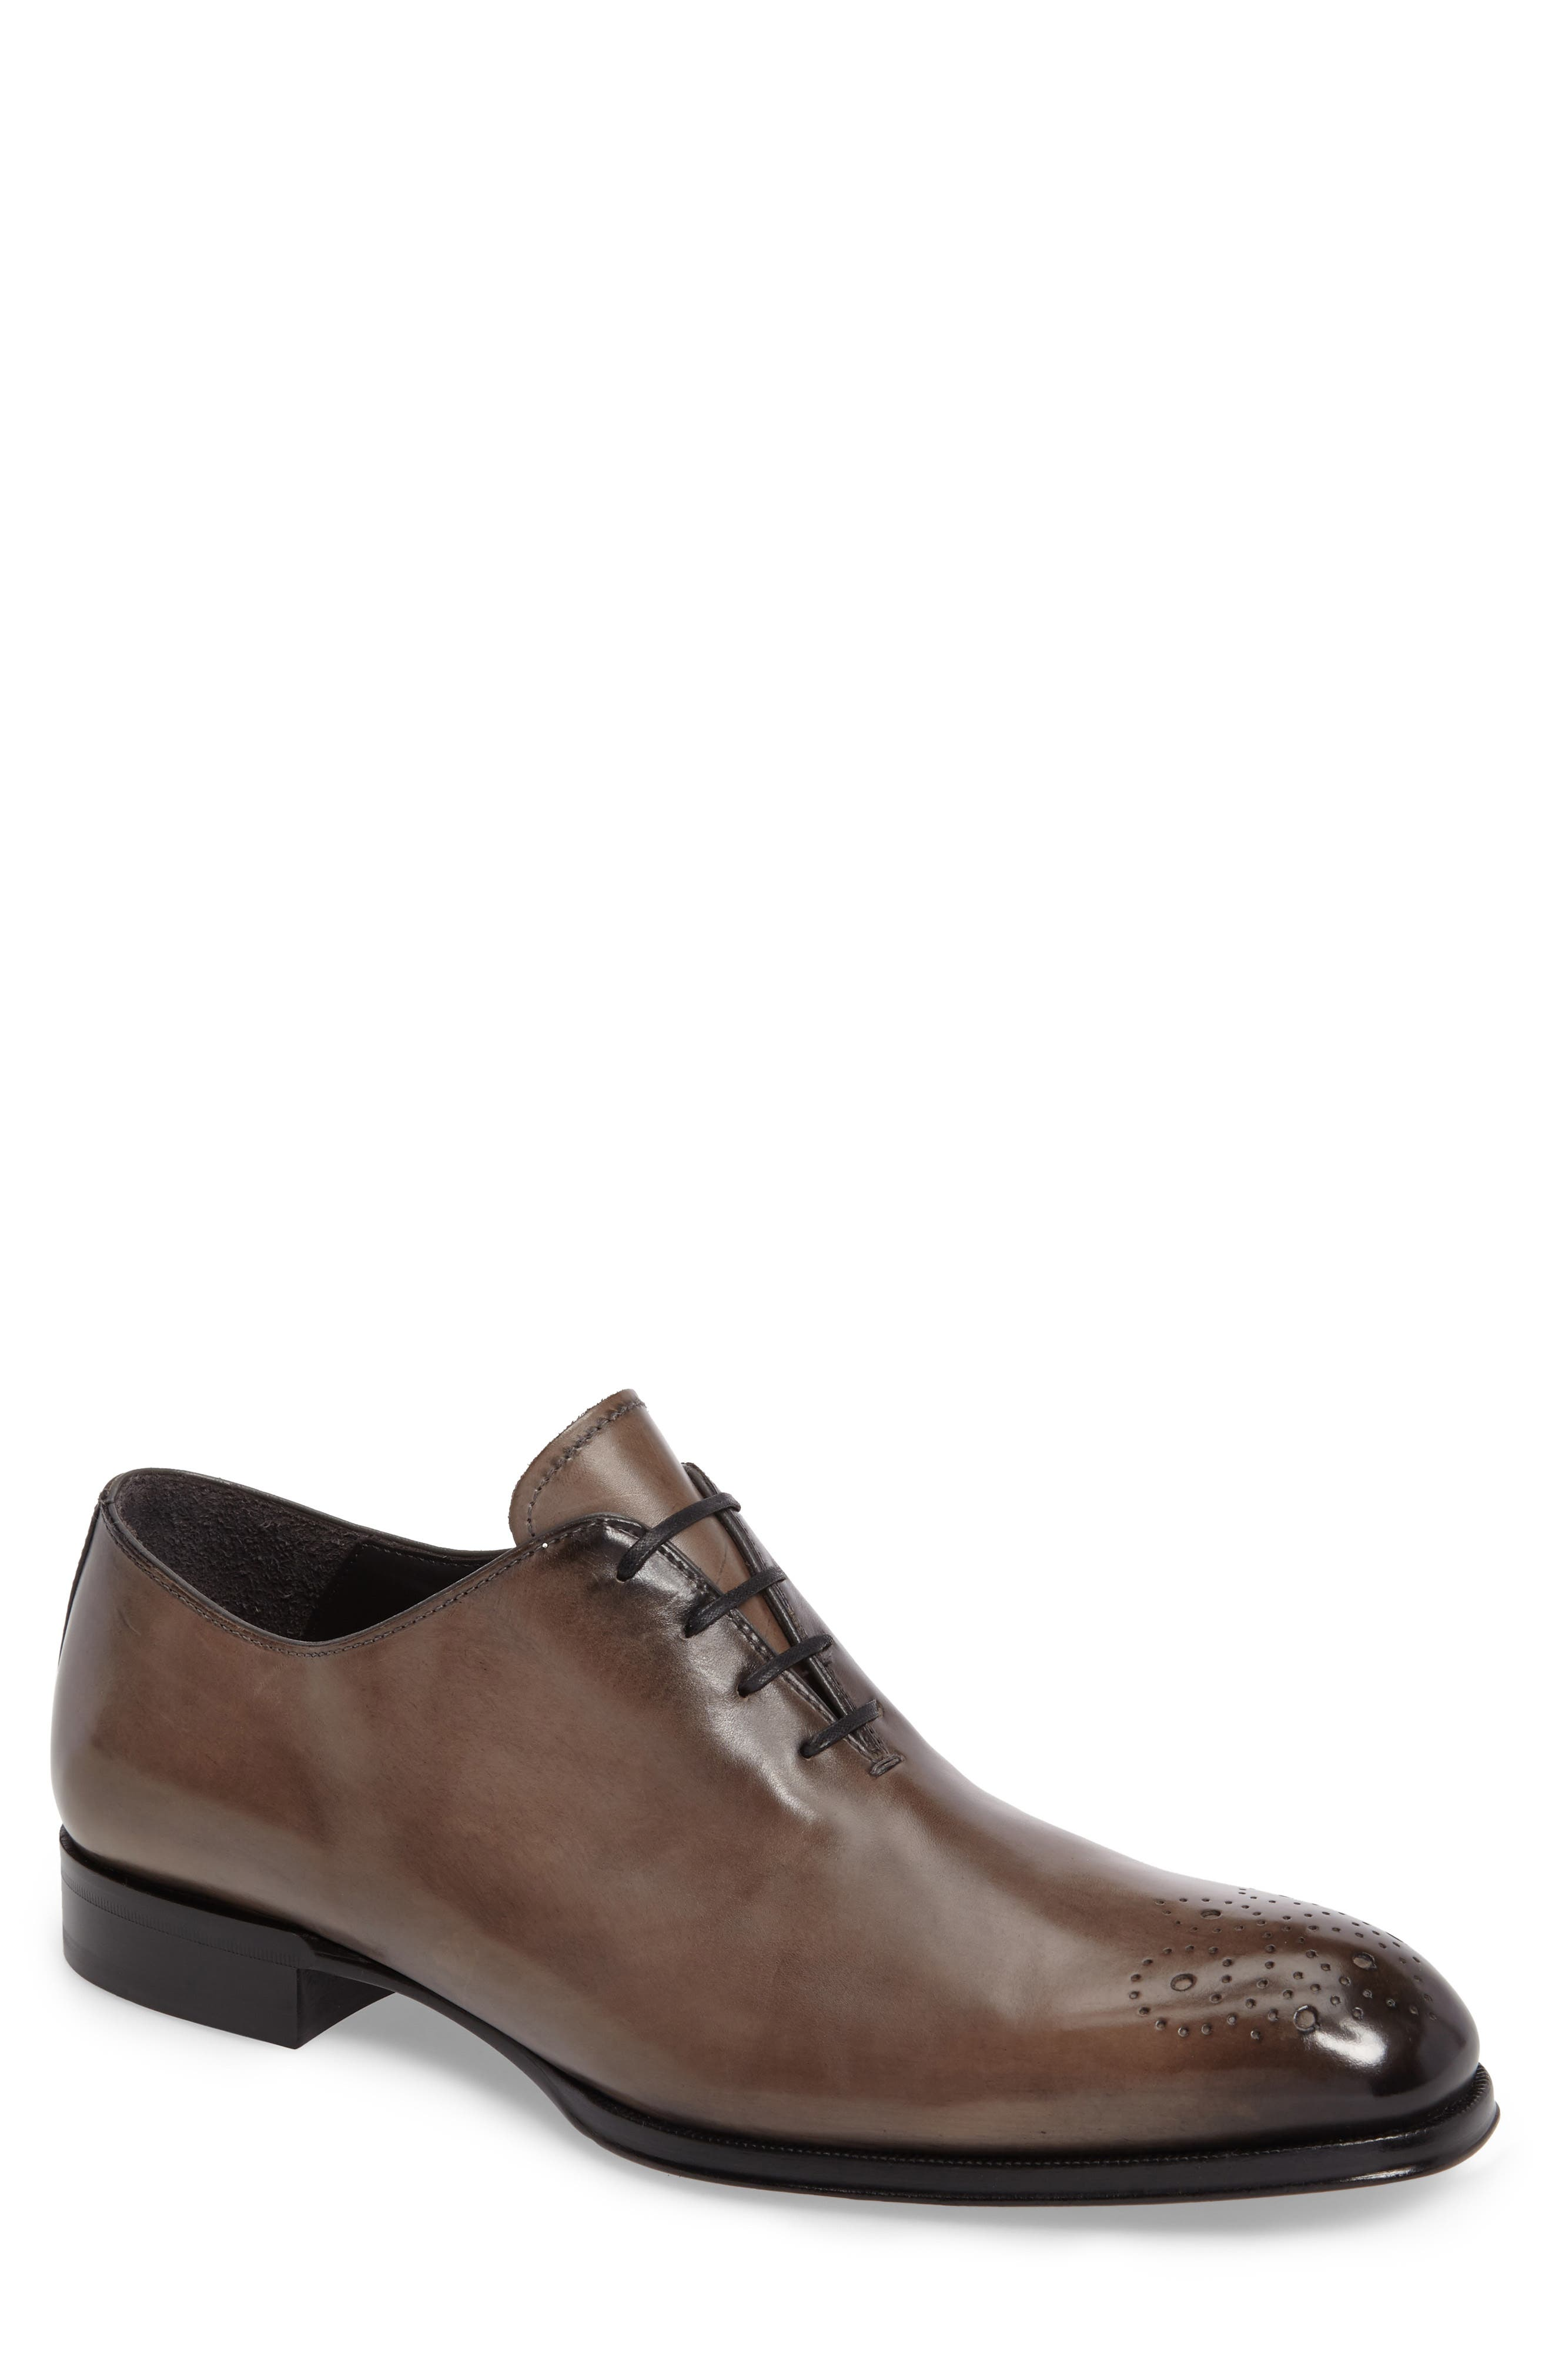 Bateman Brogue Oxford,                             Main thumbnail 1, color,                             024